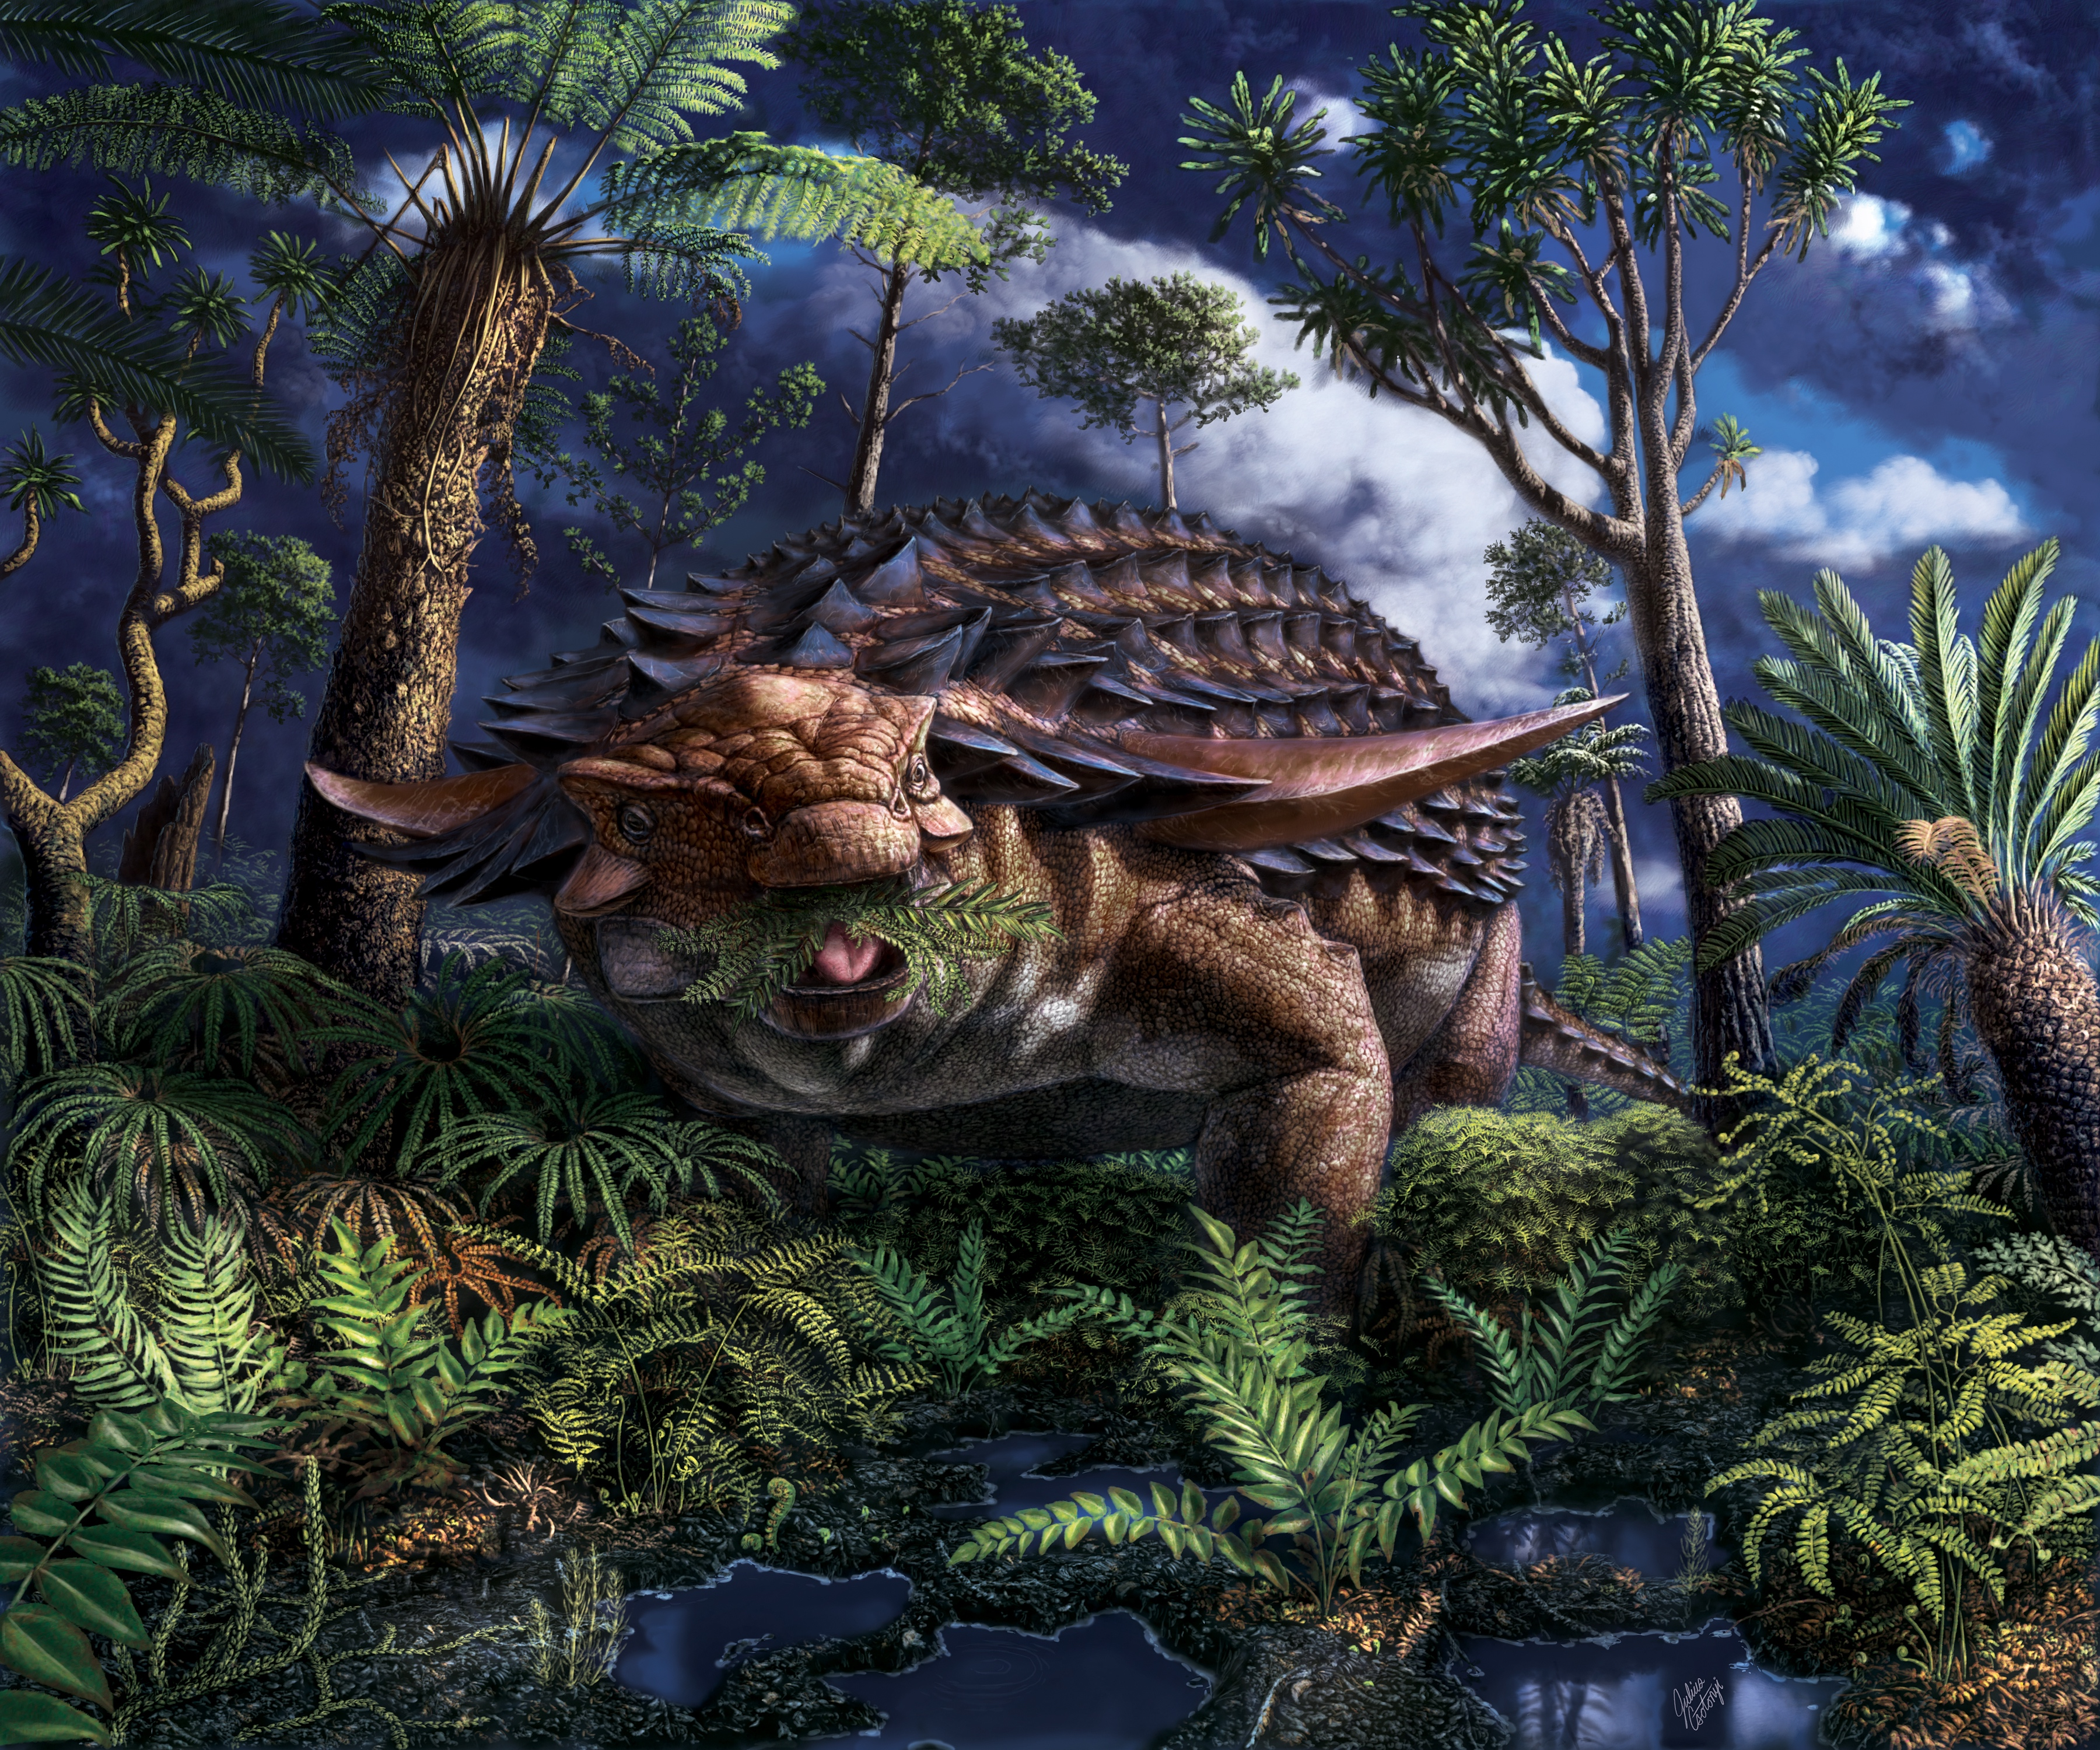 Armored Dinosaur's Last Meal Found Preserved in Its Fossilized Belly